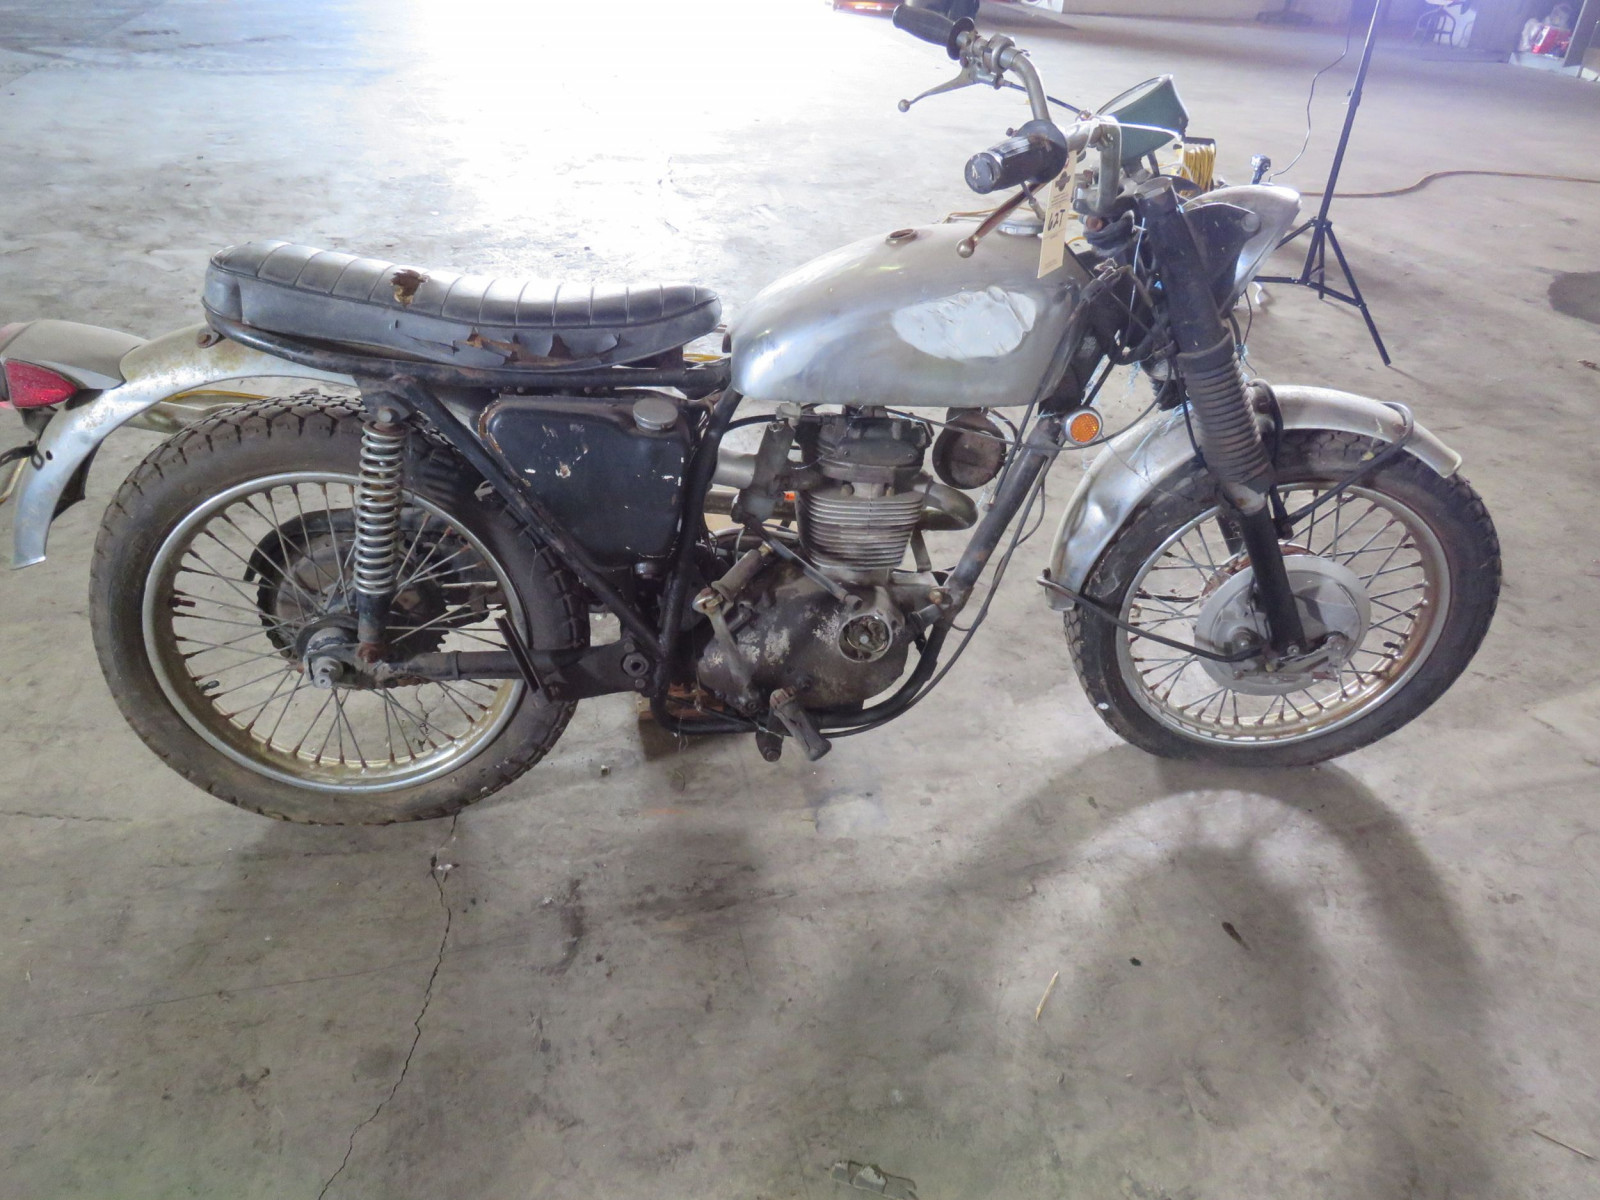 1970 BSA Motorcycle - Image 3